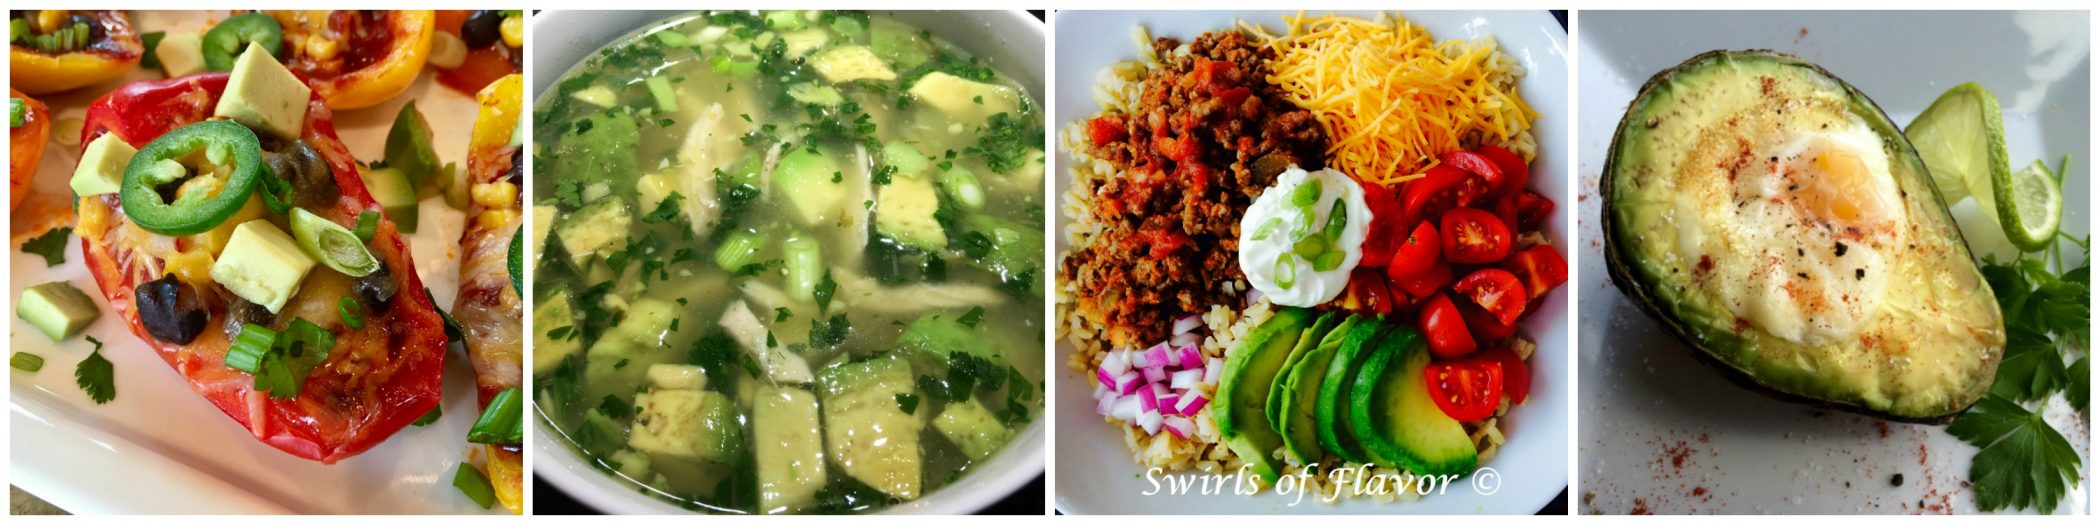 Left to right: Nacho Peppers; Avocado Chicken Soup; Taco Bowl; Baked Egg in Avocado